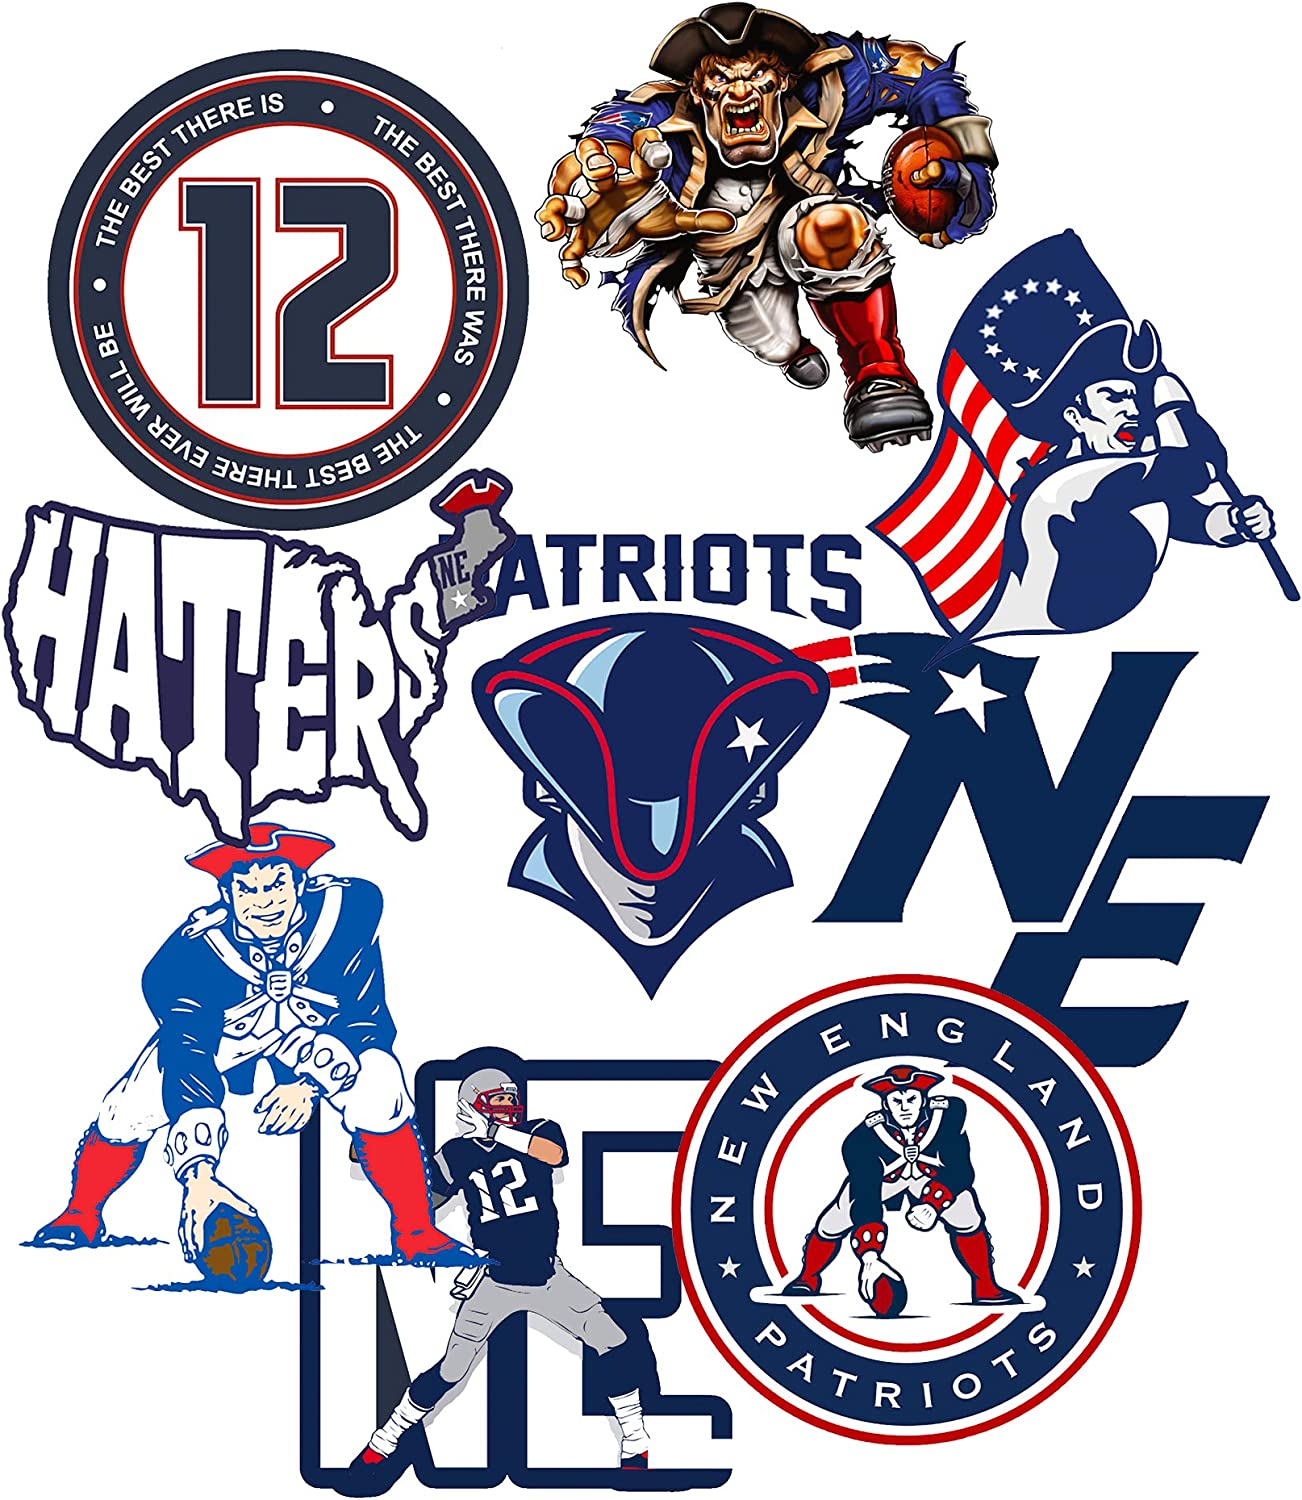 GTOTd Stickers for Patriots 10Pcs.Gifts Patriot Stickers Decal Vinyl Waterproof Stickers Skateboard Guitar Travel Case Sticker Door Laptop Luggage Car Bike Stickers